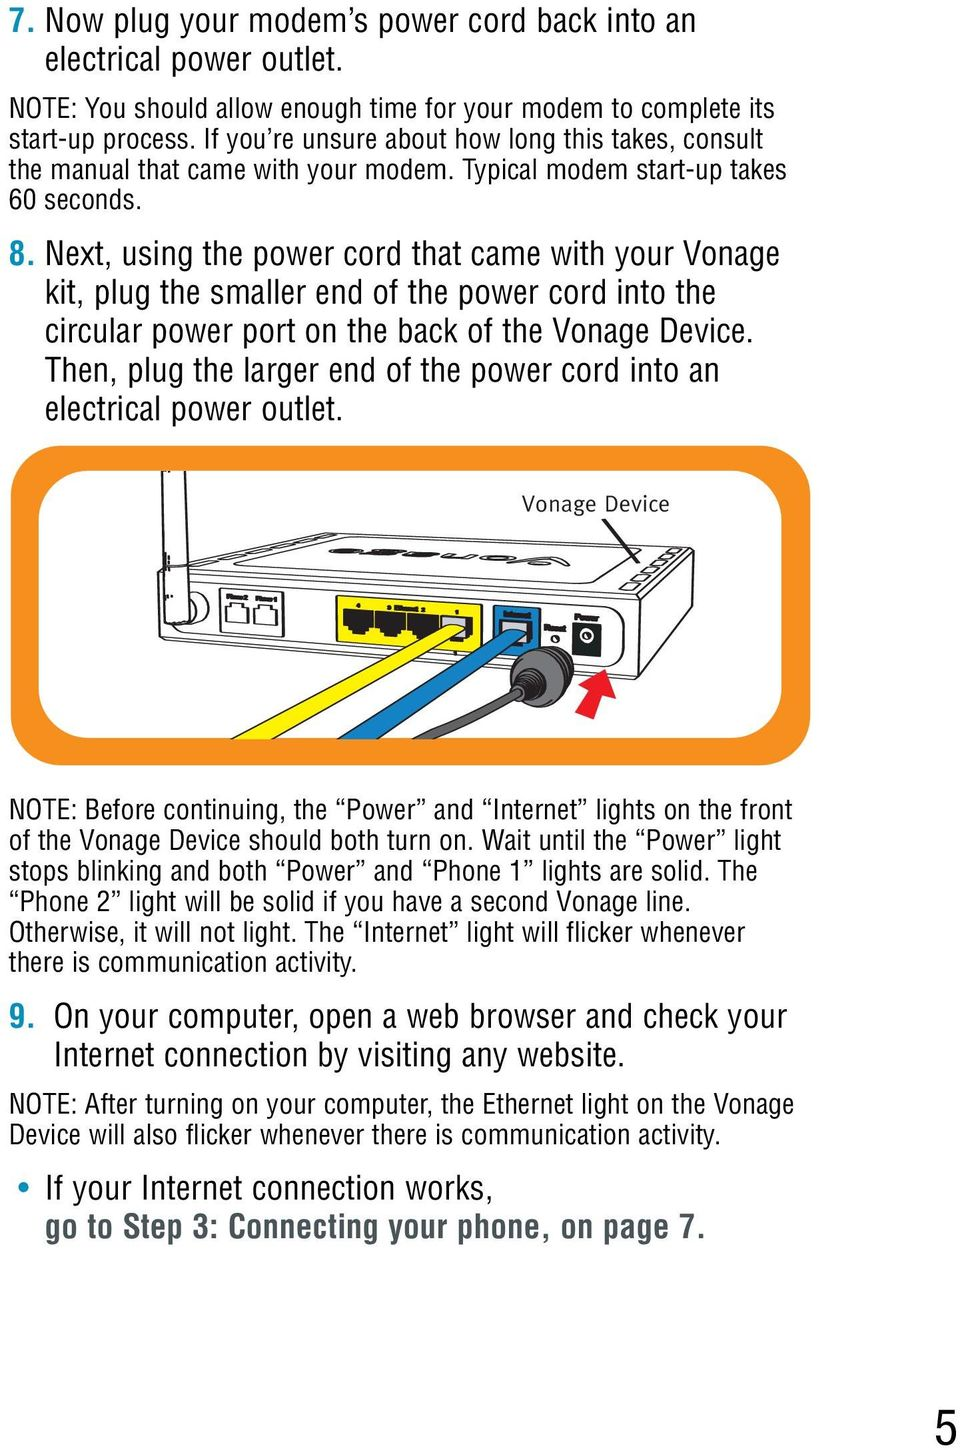 Next, using the power cord that came with your Vonage kit, plug the smaller end of the power cord into the circular power port on the back of the.